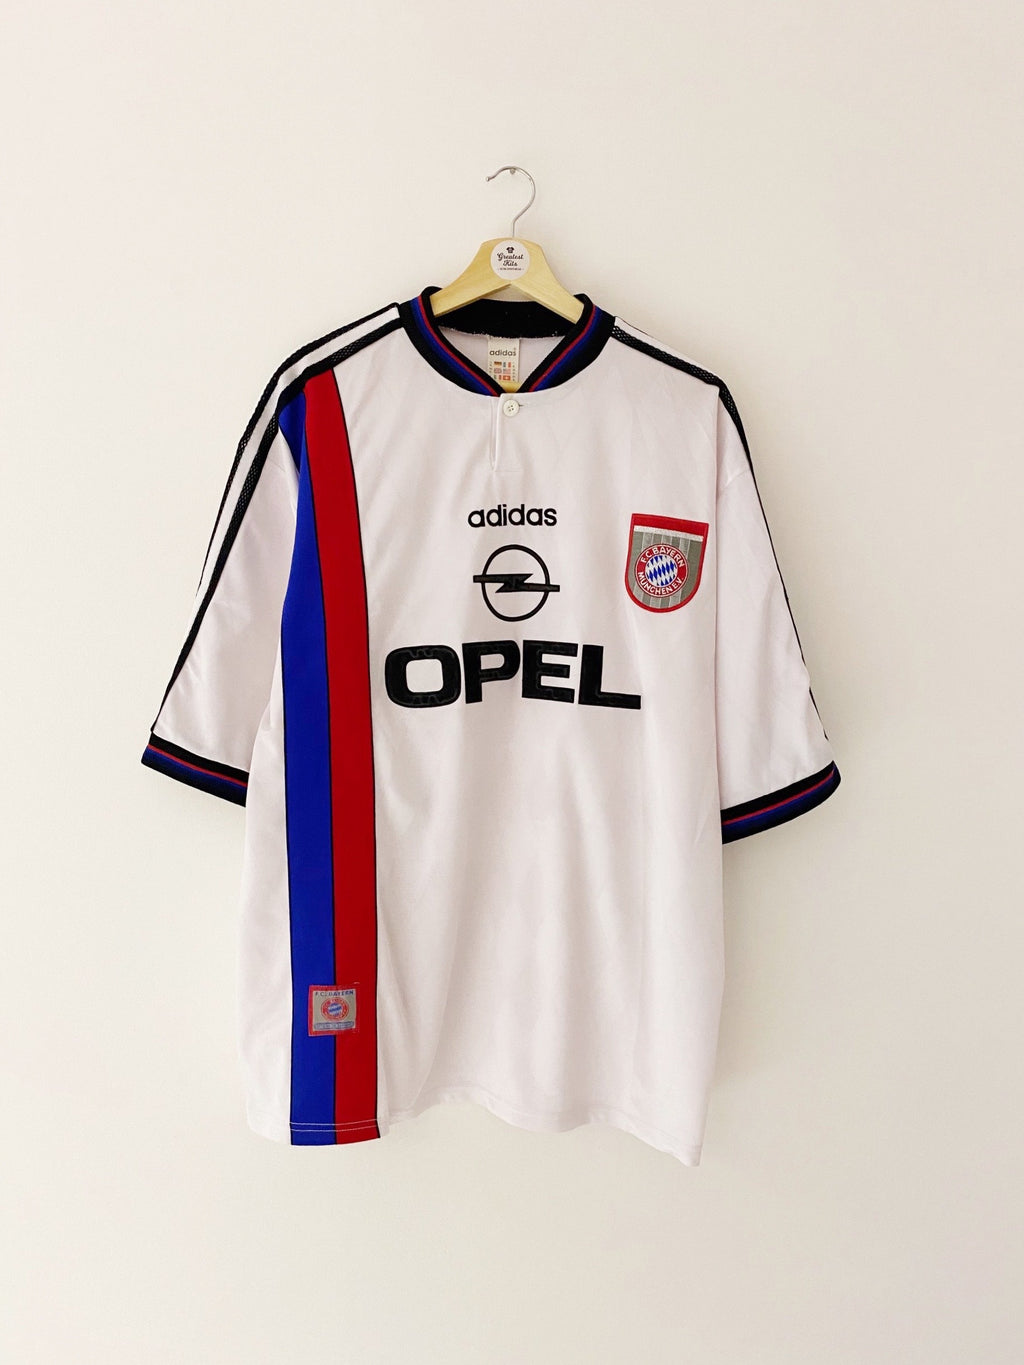 1995/97 Bayern Munich Away Shirt (XL) 6.5/10